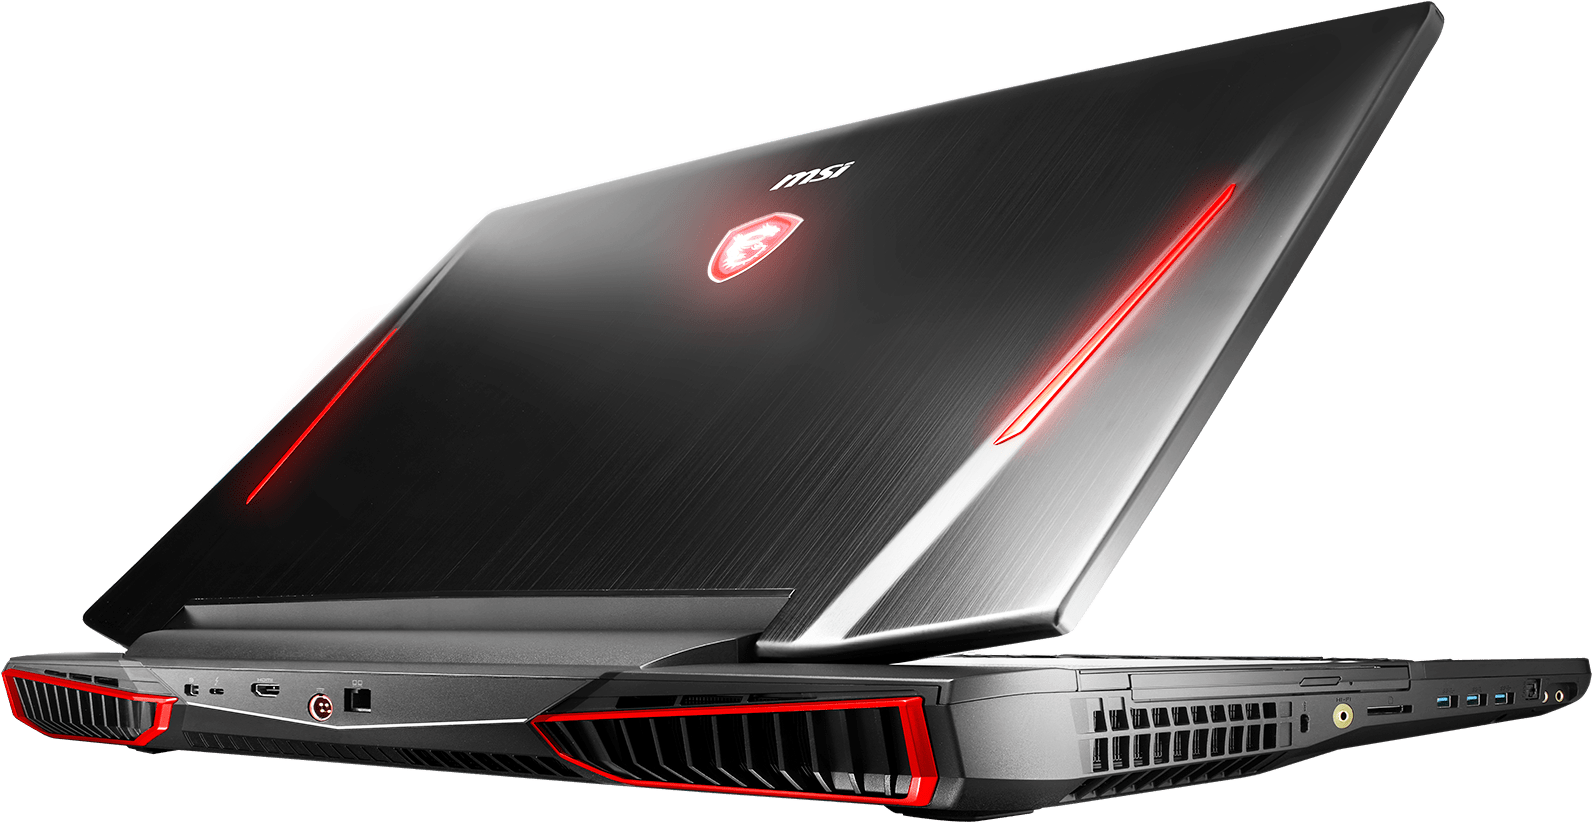 MSI Updated Its Gaming Laptops With The Latest Intel CPUs And Nvidia GPUs